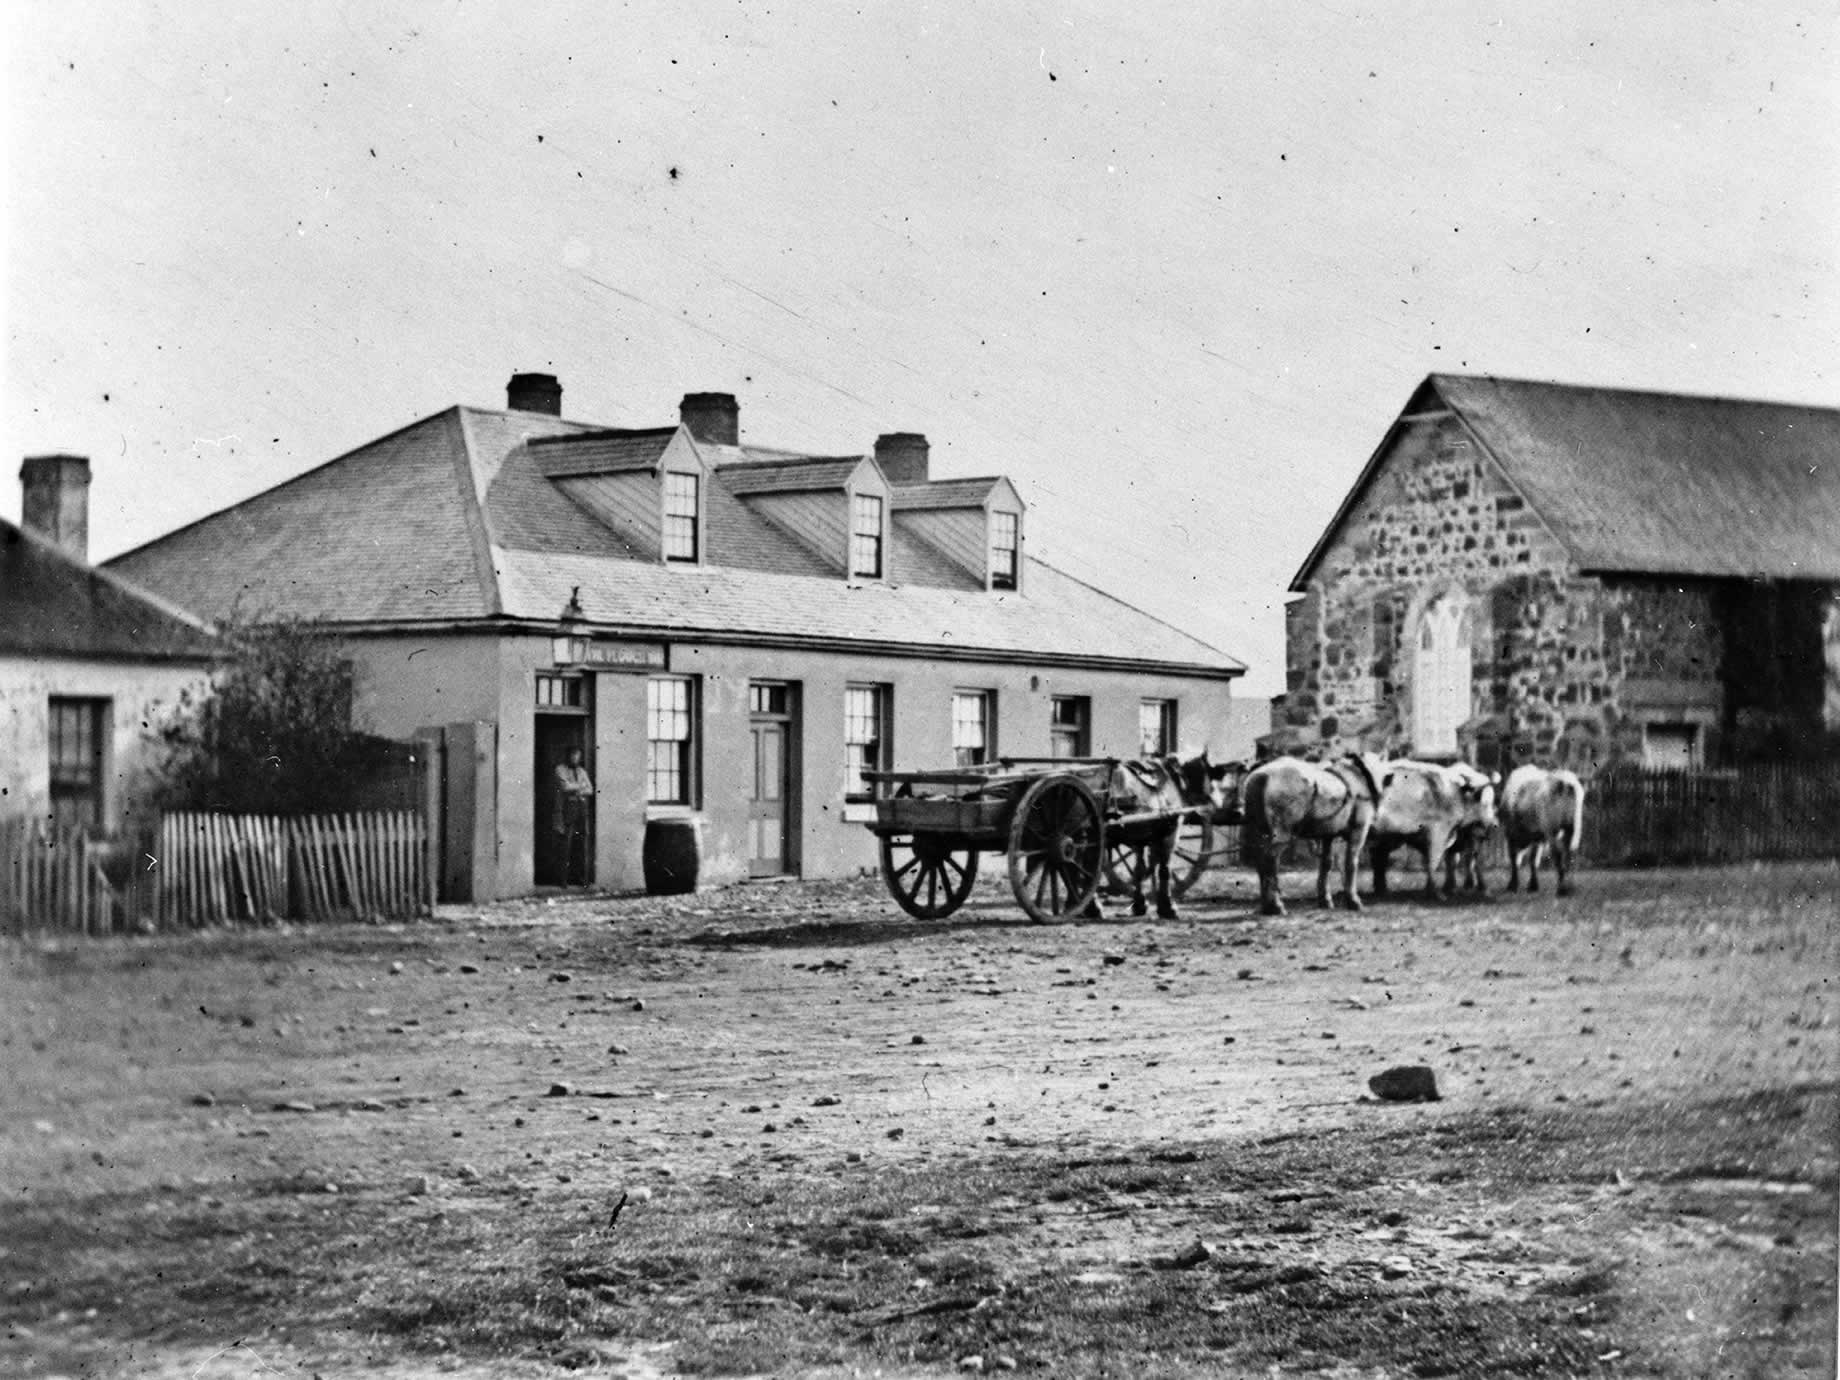 Horse and cart waiting outside the Plough Inn, 1870